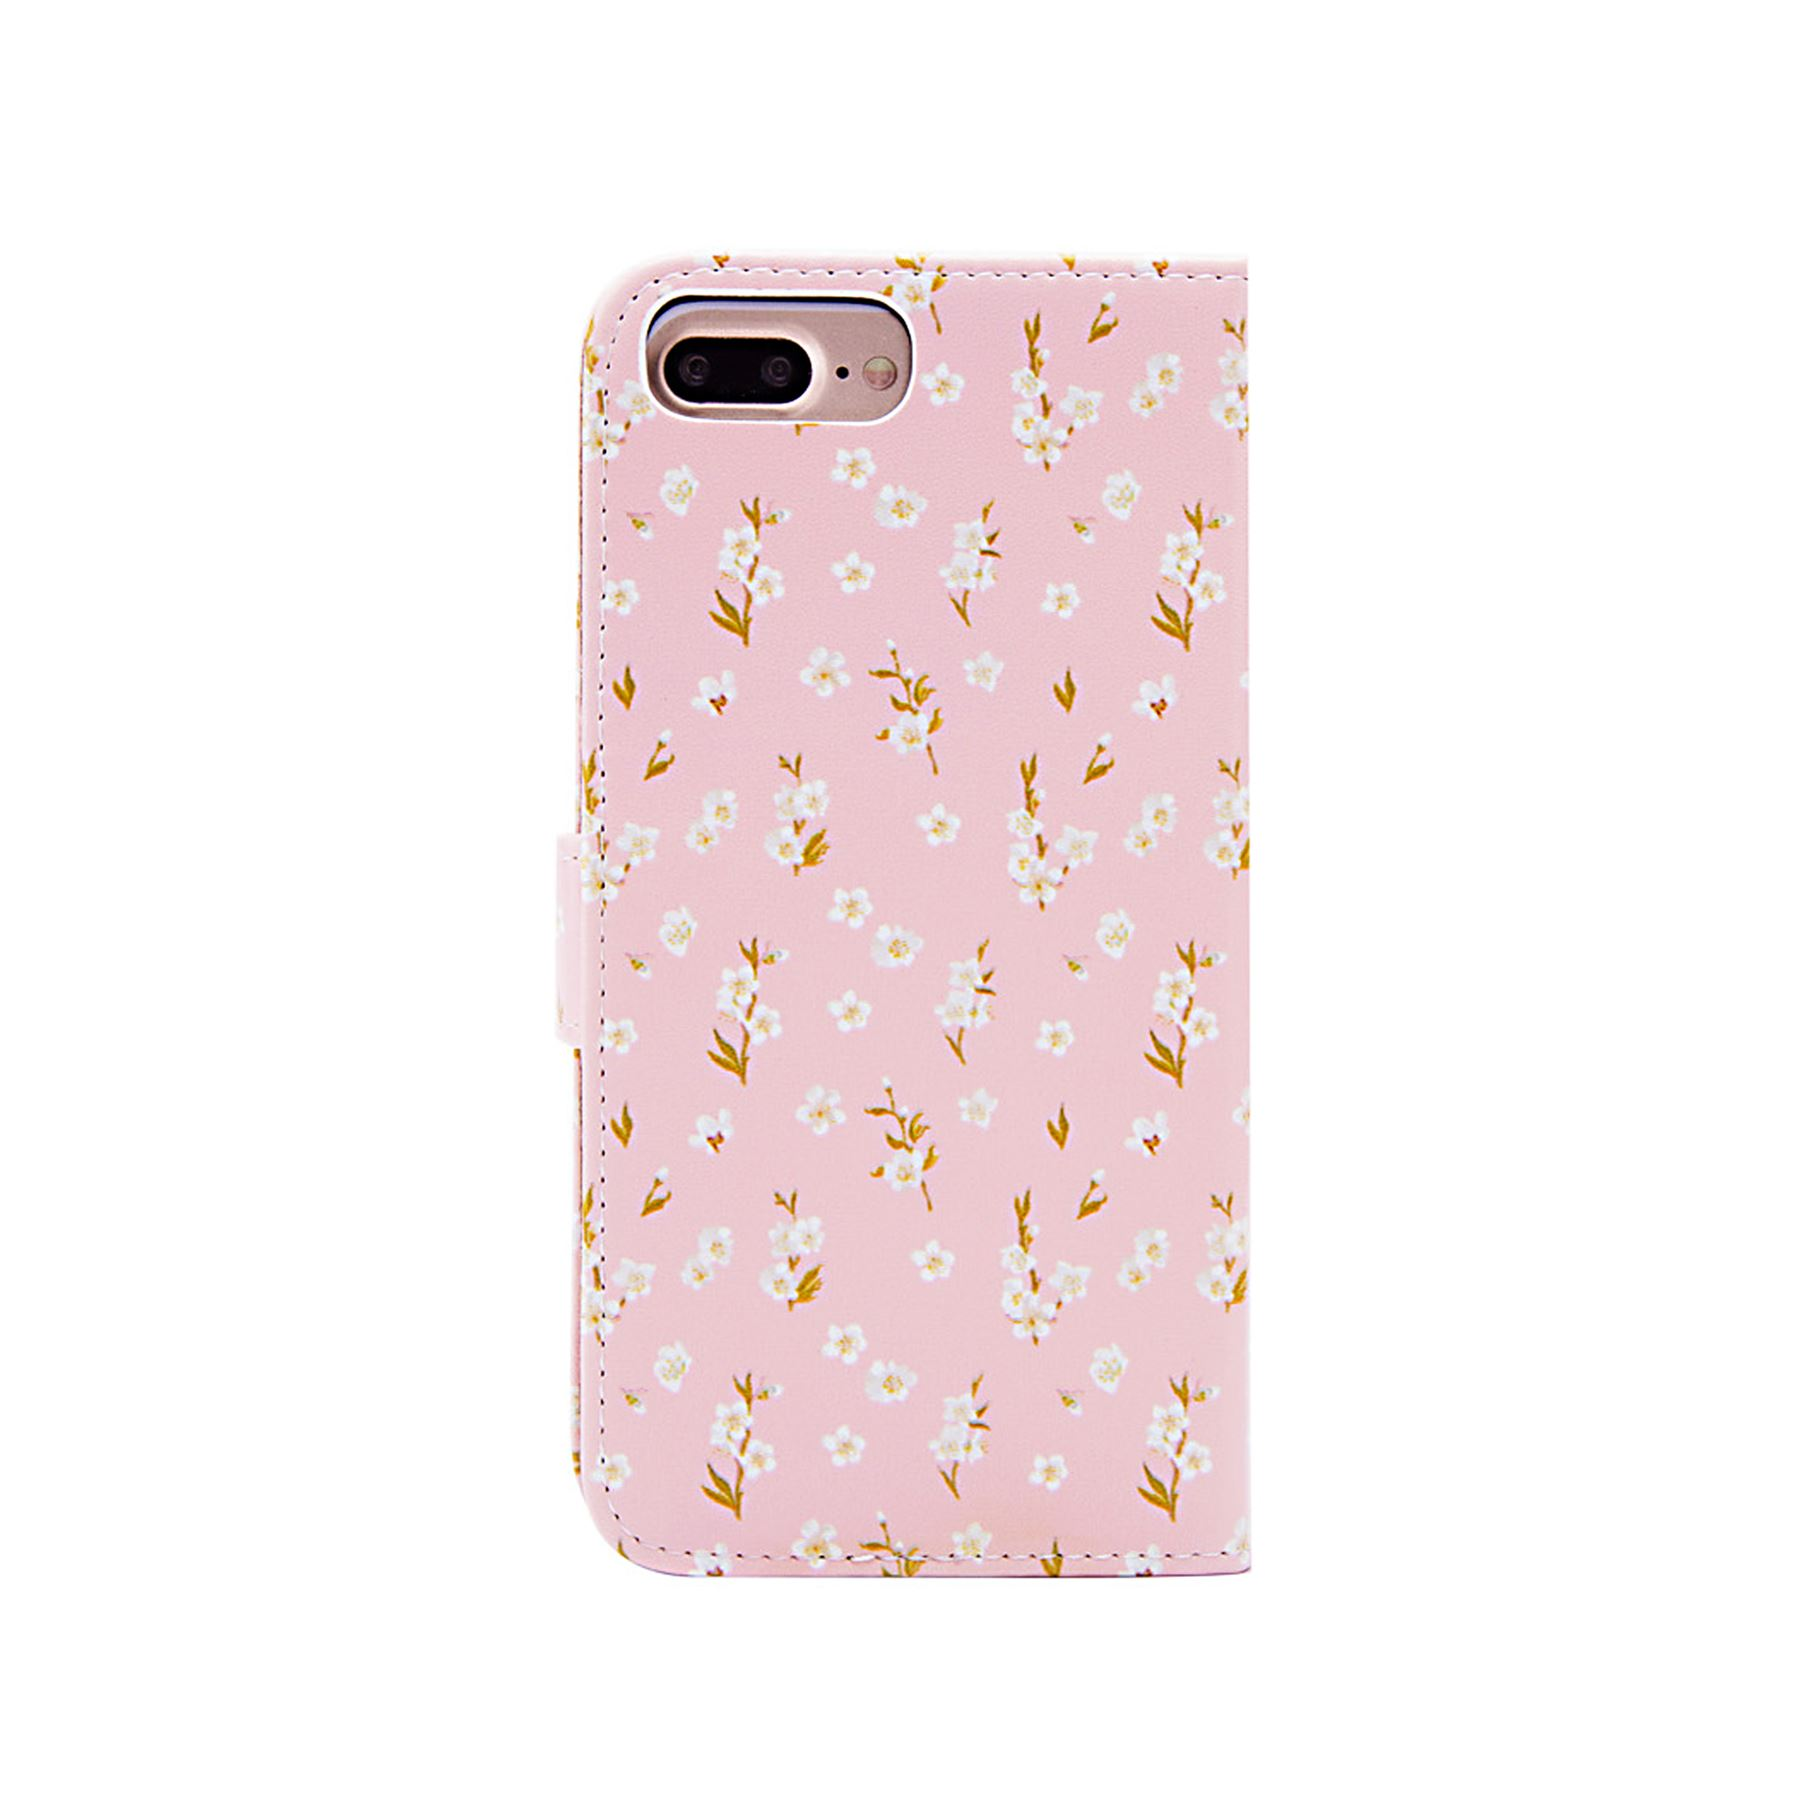 32nd floral series iphone 7 case